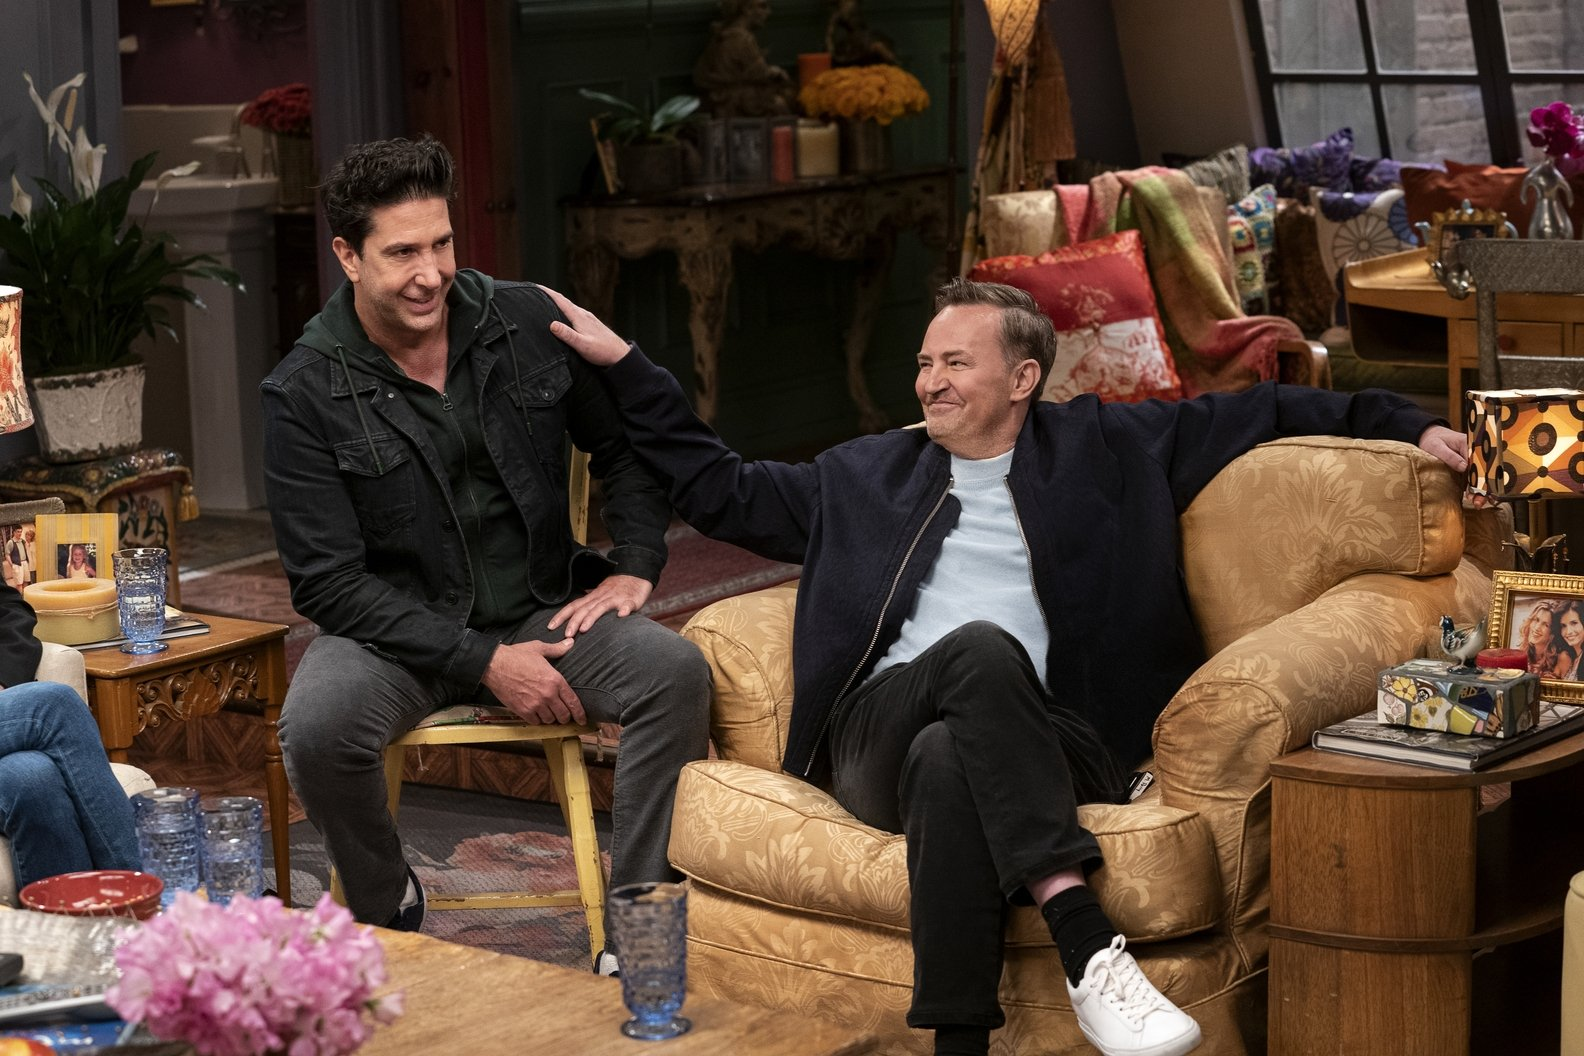 Matthew Perry (R) patsDavid Schwimmer on the shoulder as he sits down in the famous apartmentfrom the television series 'Friends' during the reunion special. (HBO Max via AP)